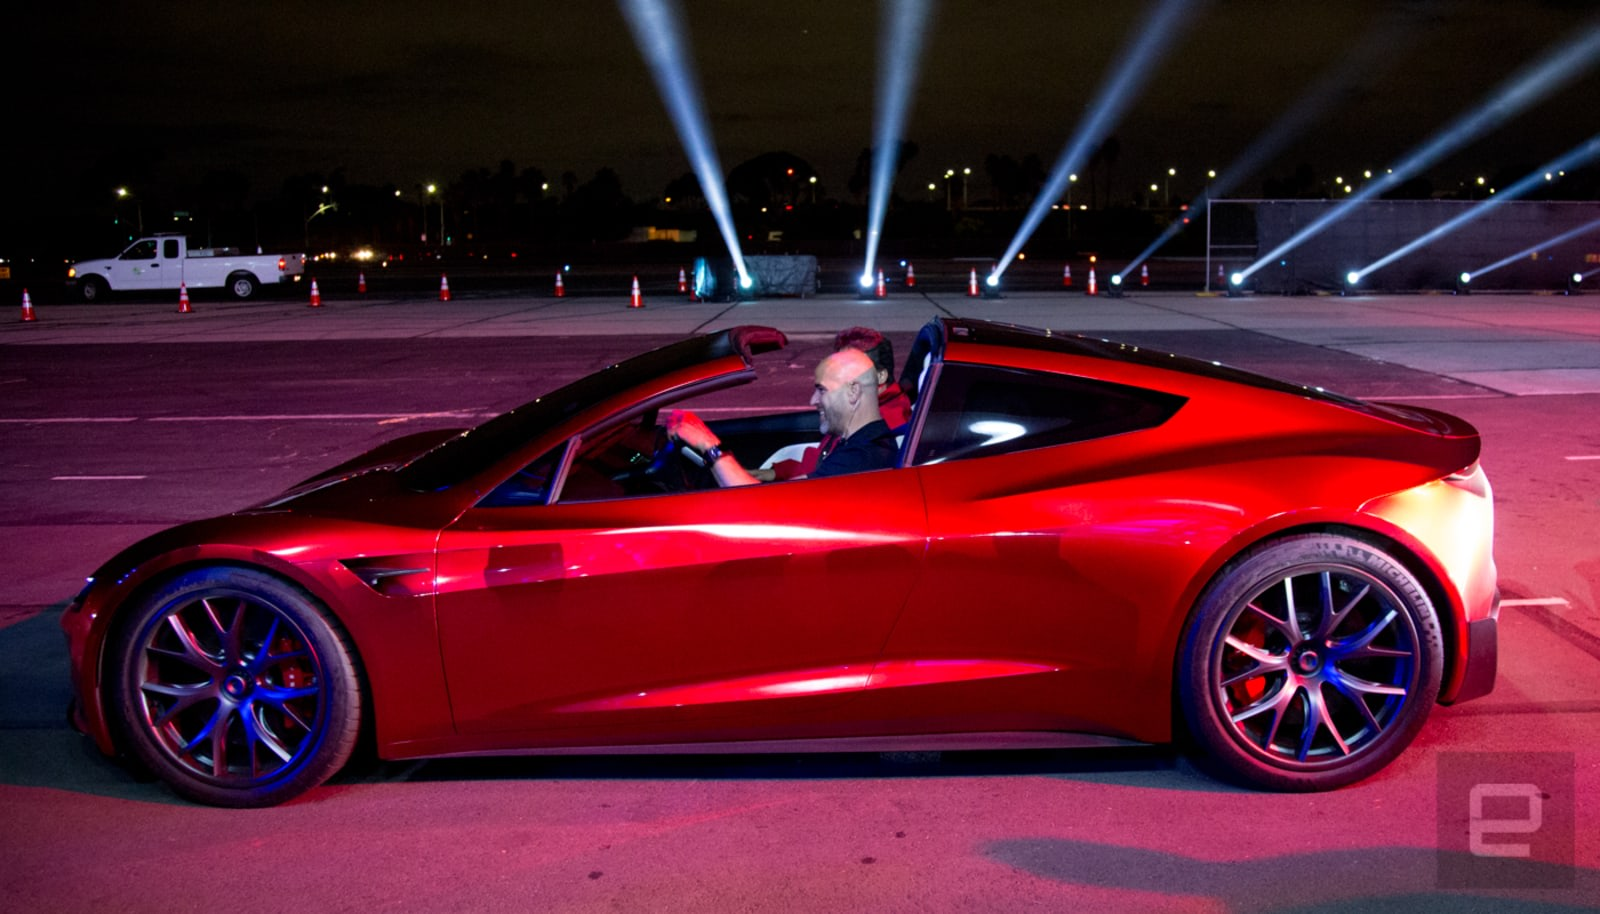 Tesla Roadster will get even quicker through an option package